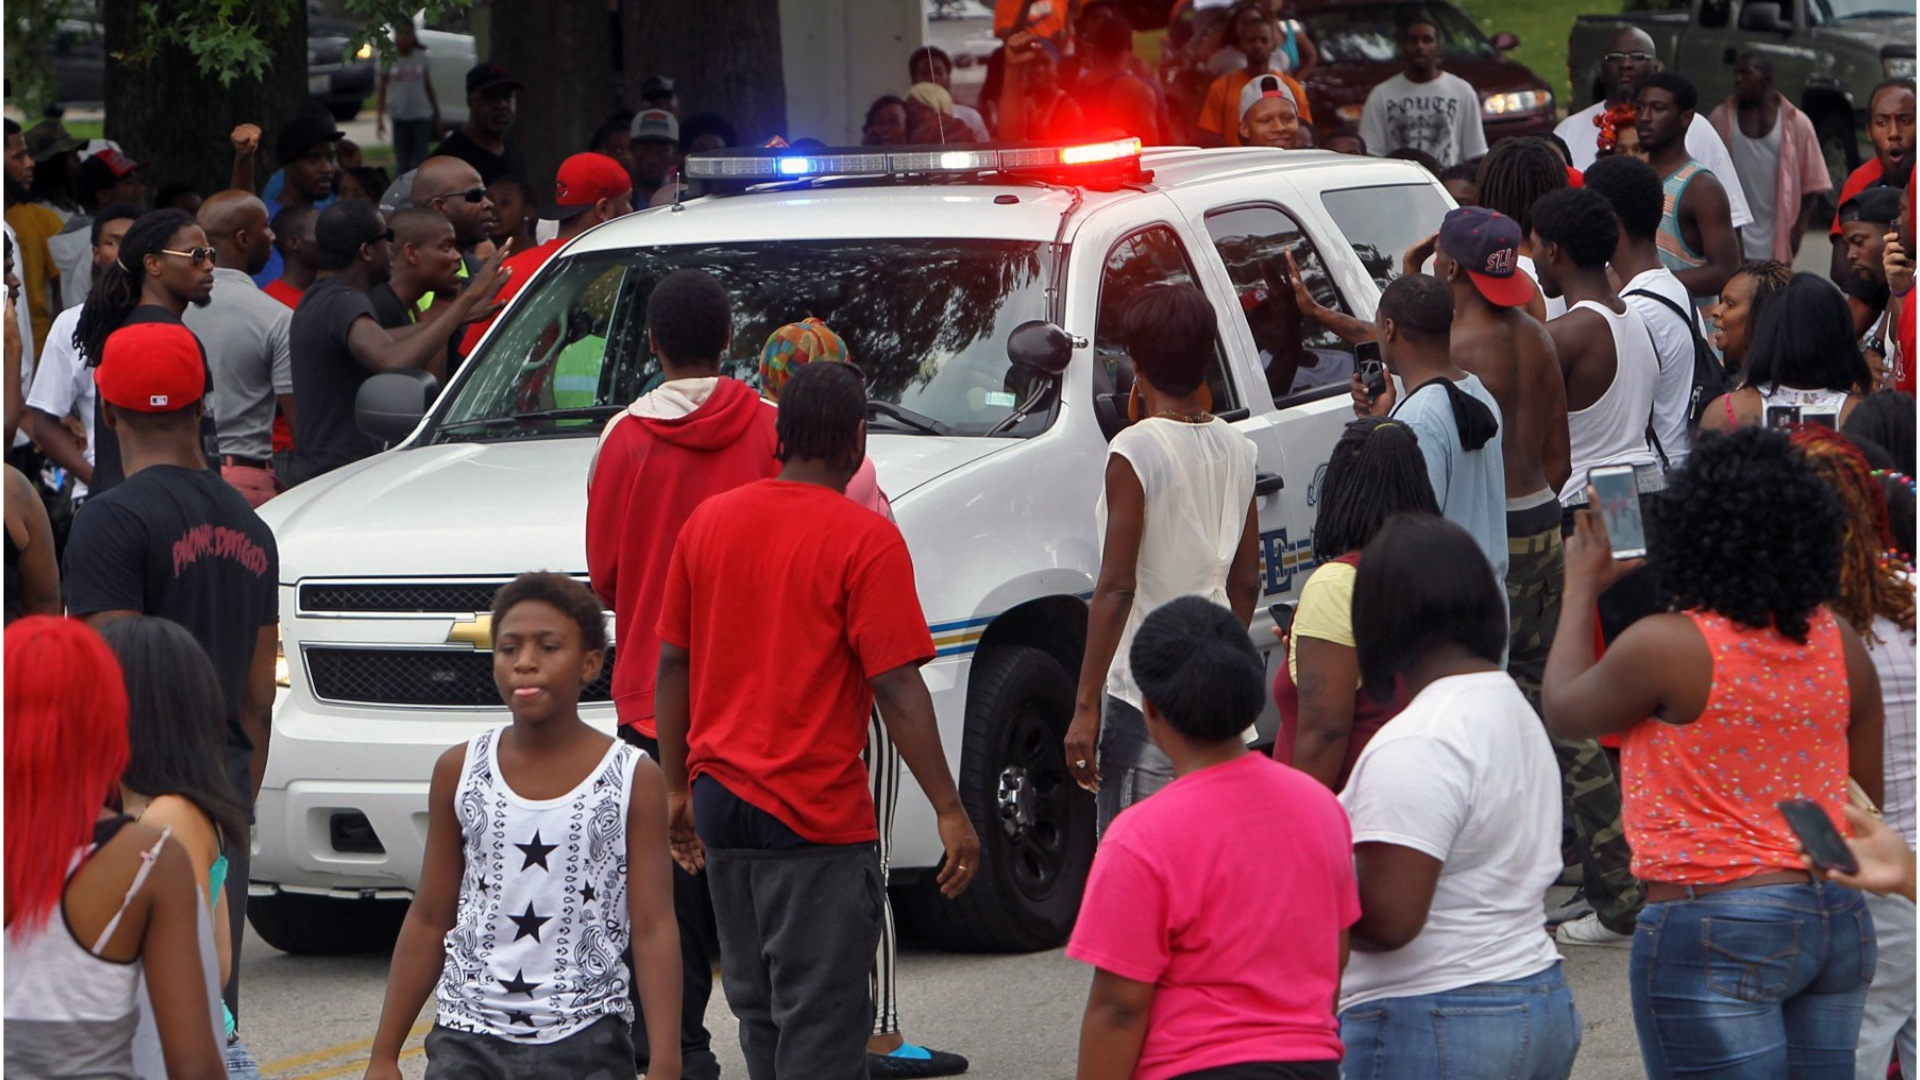 In three minutes, two lives collide and a nation divides over Ferguson shooting